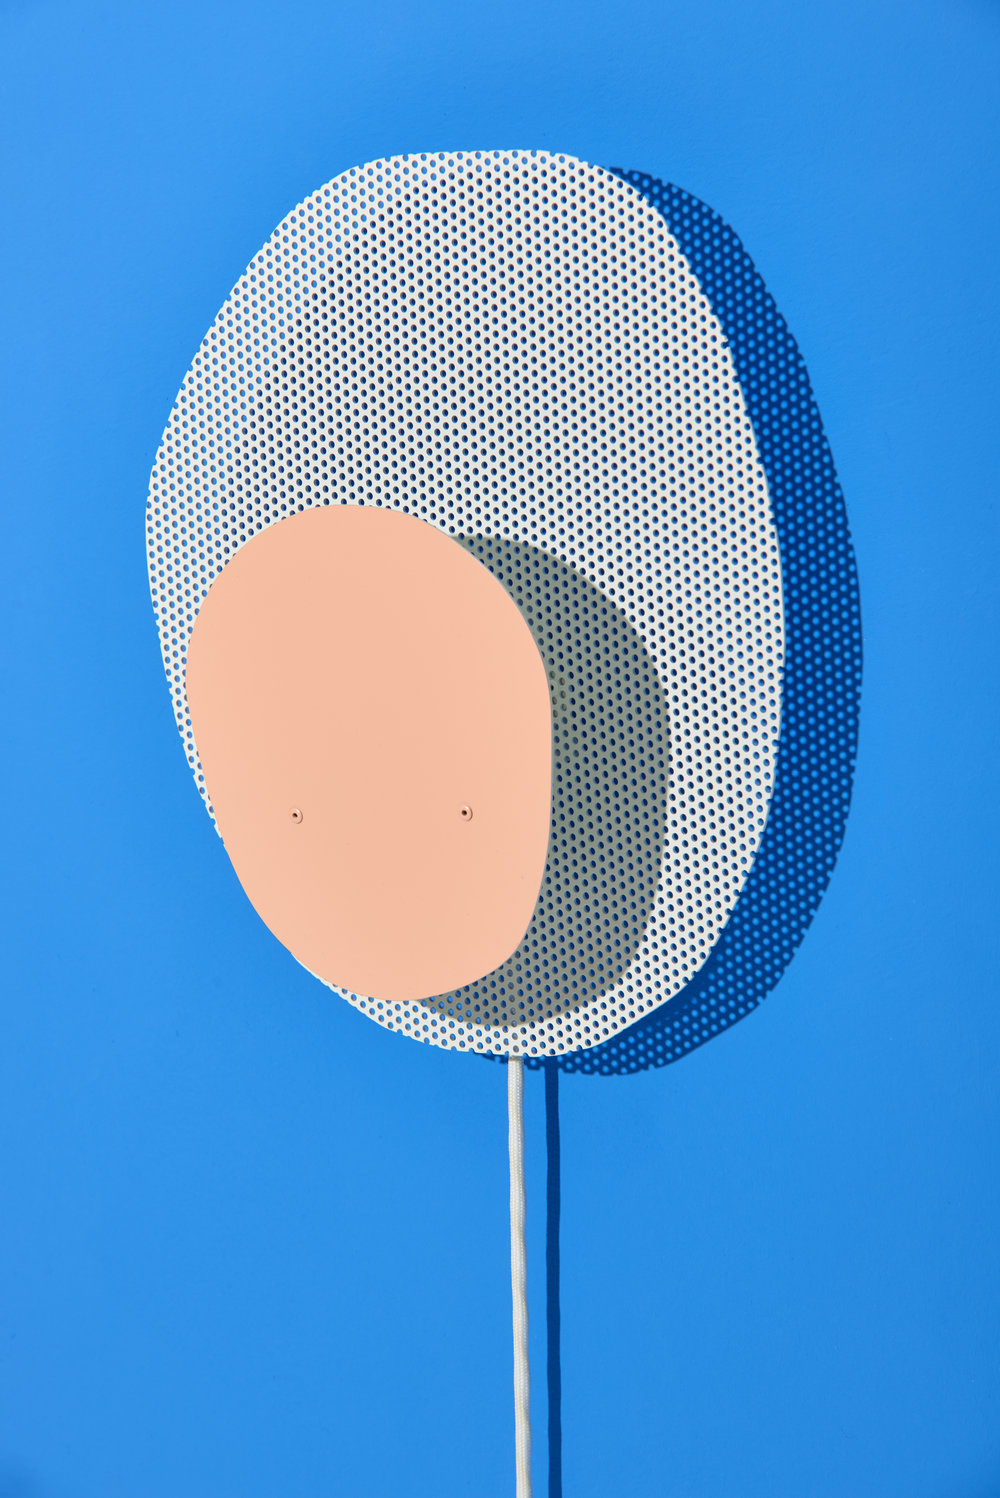 Poppy_Wall_Lamp_Frederik_Kurzweg_Design_Studio_02.jpg